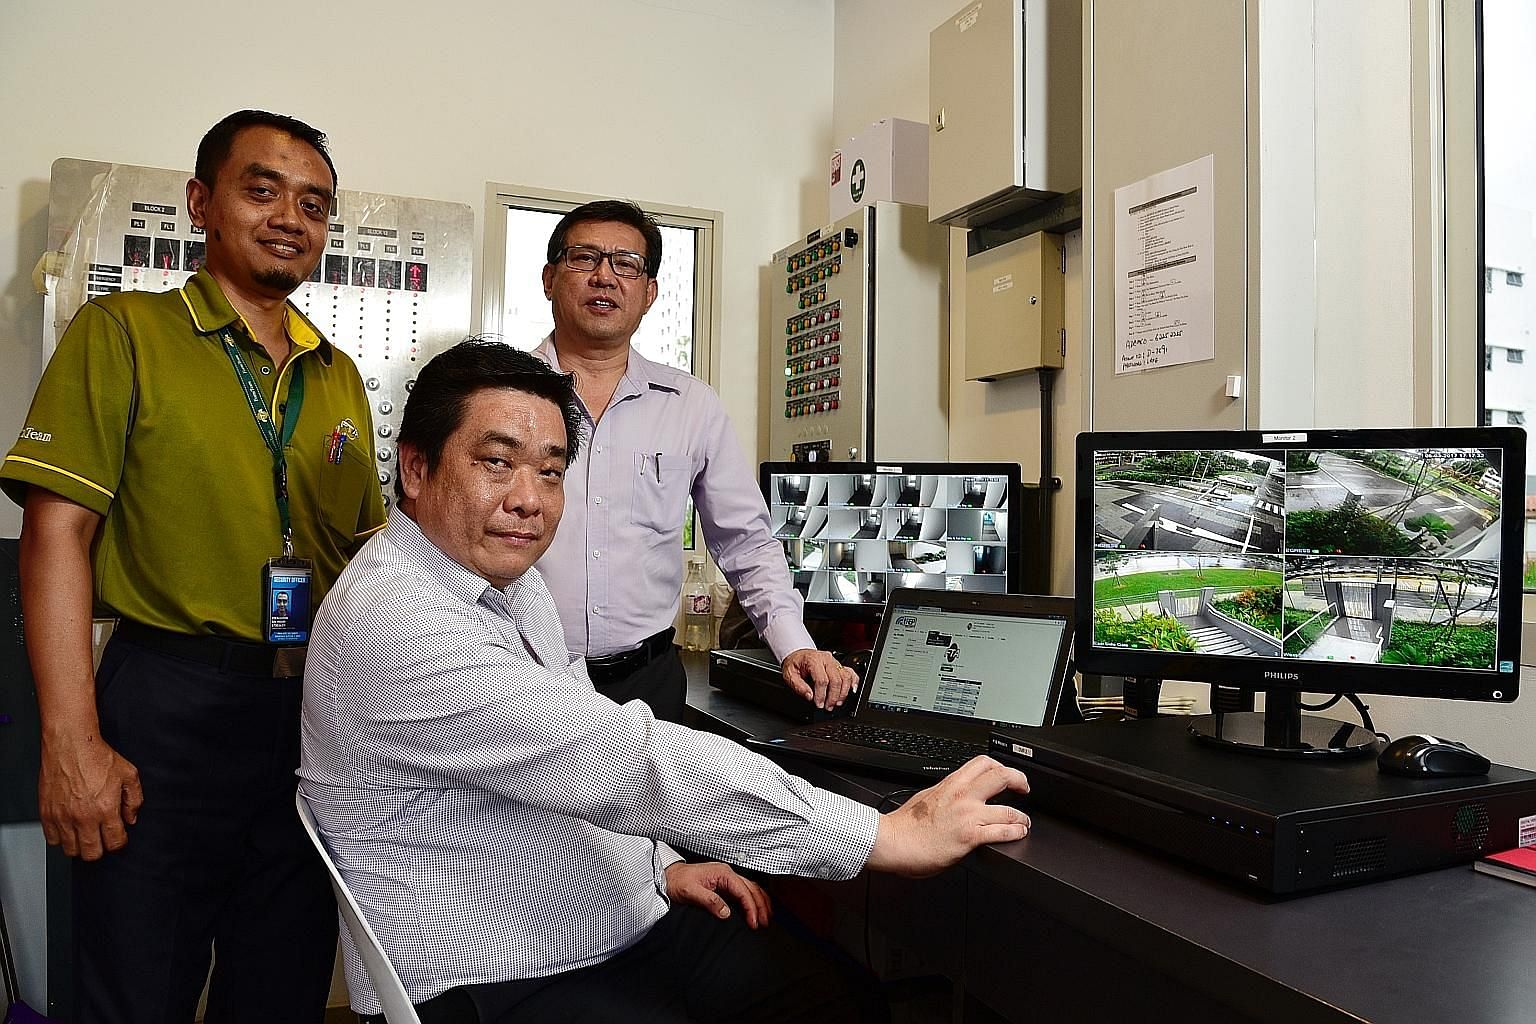 FormTeam Consultancy's (from left ) security supervisor Rezalludin Husin, 44, operations manager Mike Tan Kheng Boon, 46, and senior operations manager Eric Goh Sok Hiong, 53, have benefited from a system that enables mobile reporting, maintenance tr